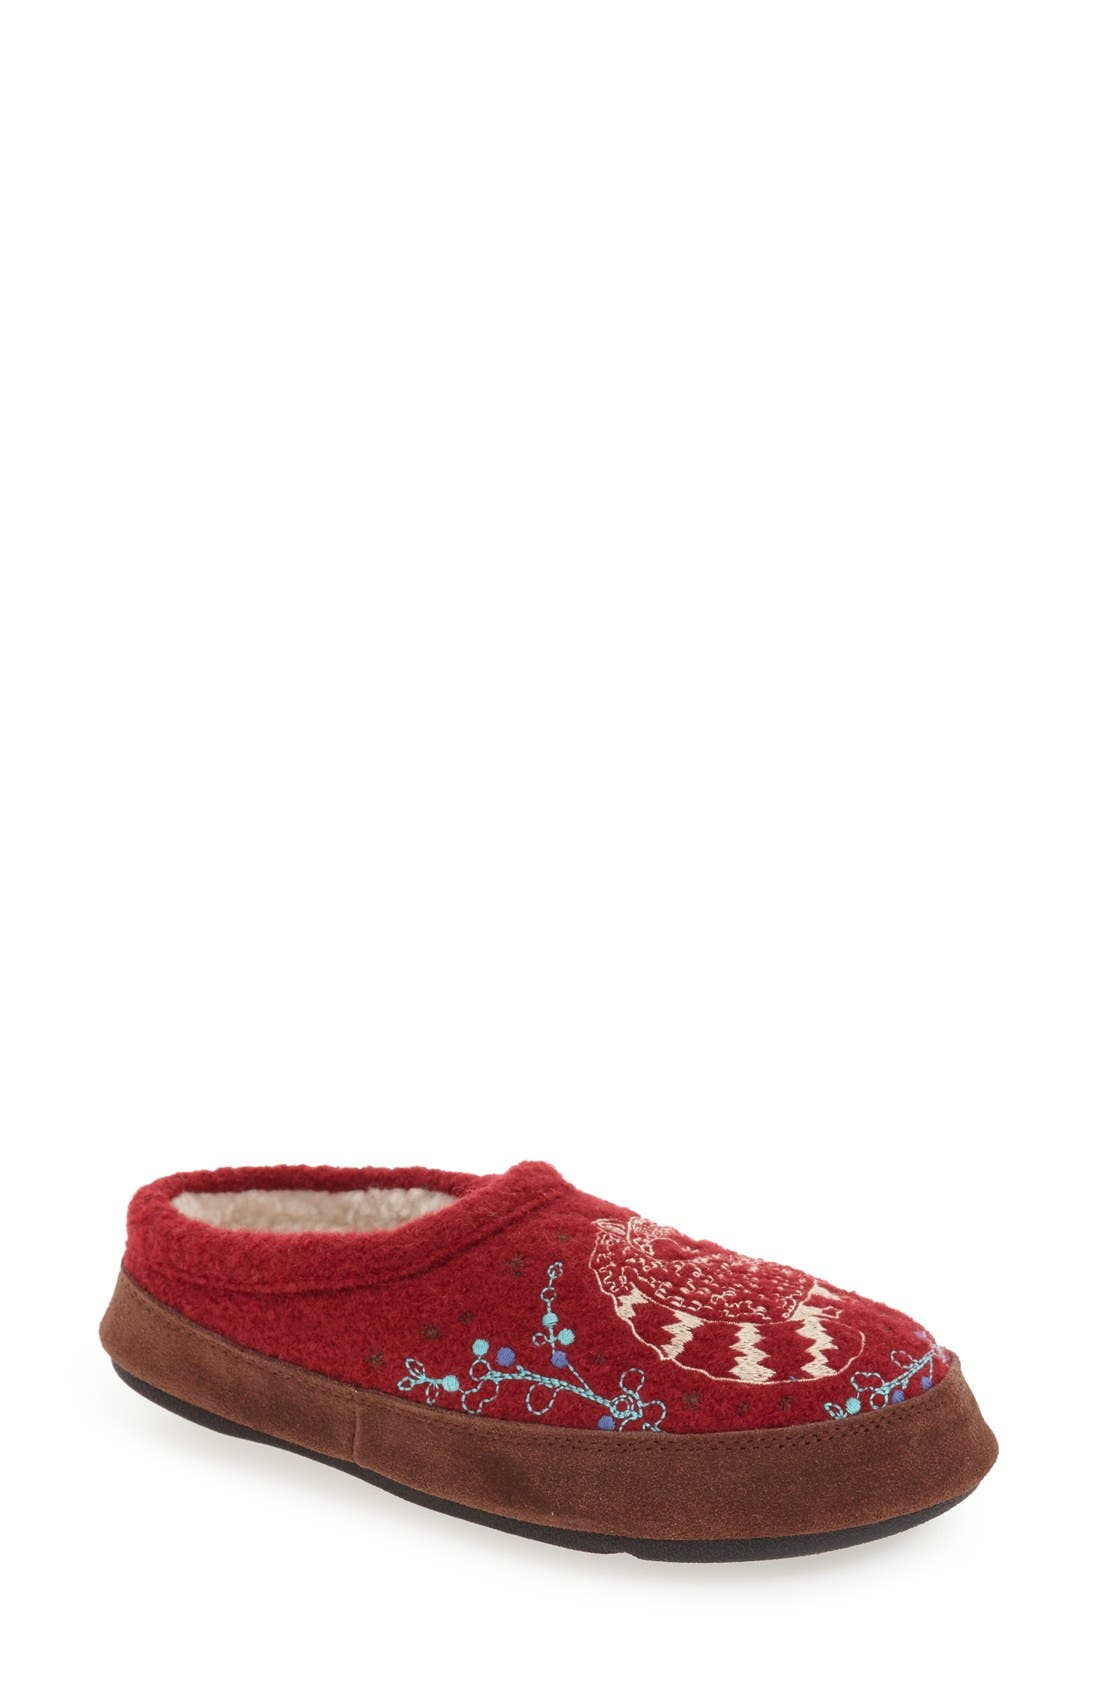 Acorn 'Forest' Wool Mule Slipper (Women)